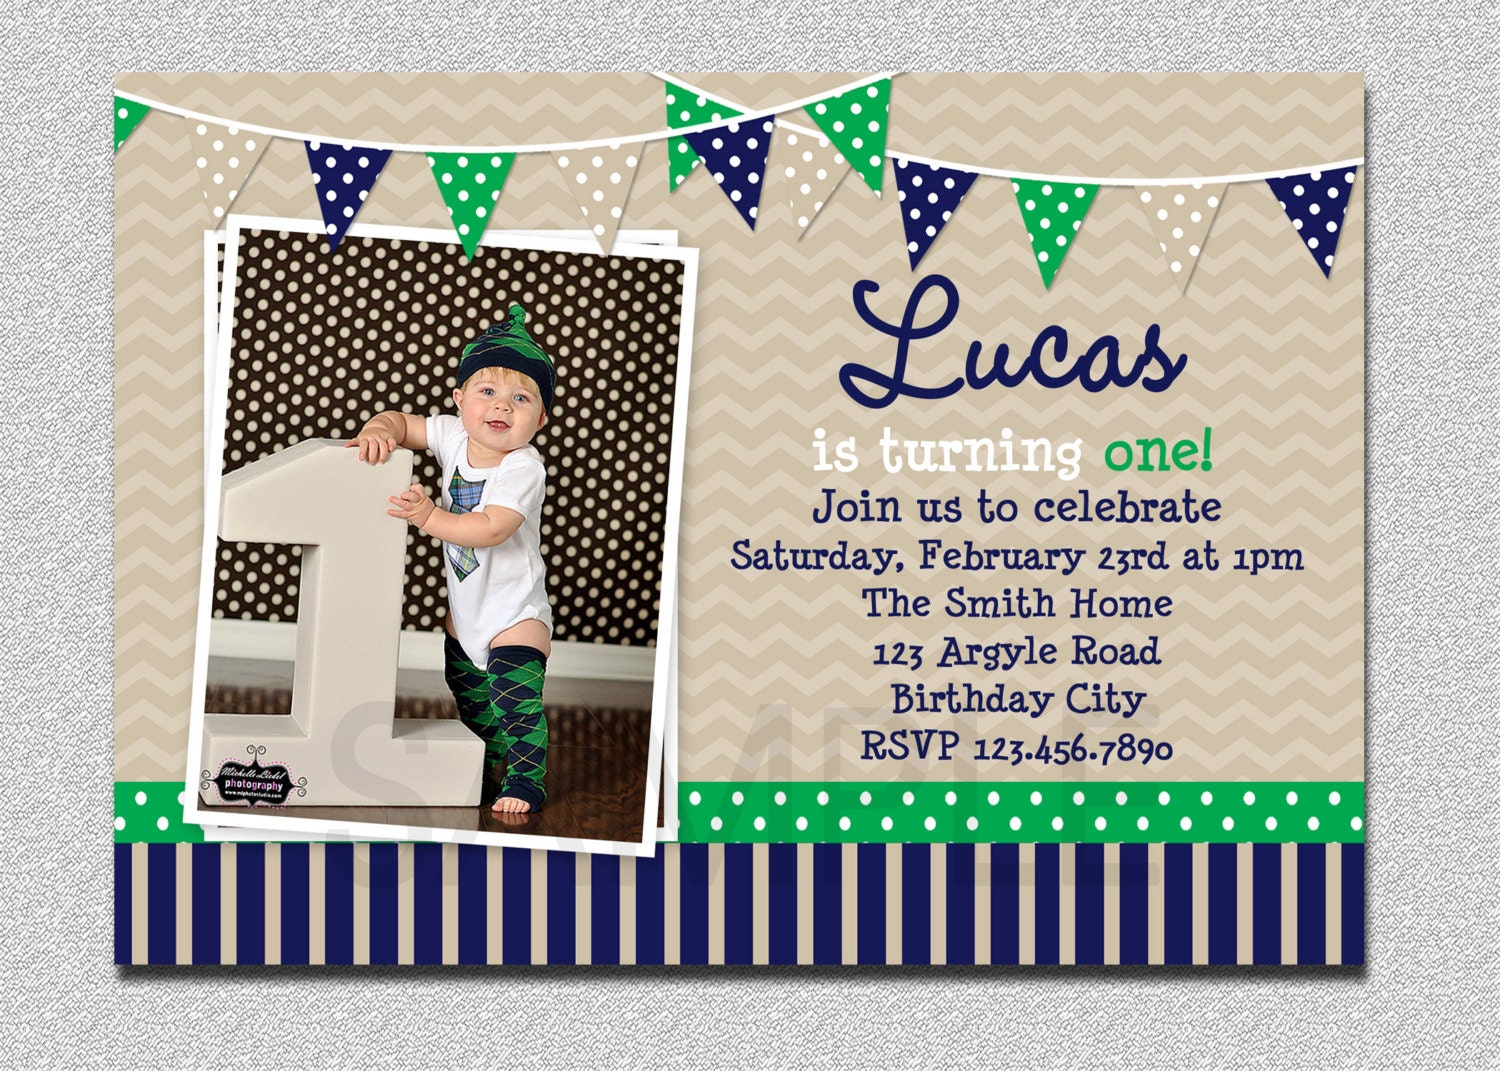 Birthday invitation for boys samannetonic birthday invitation for boys filmwisefo